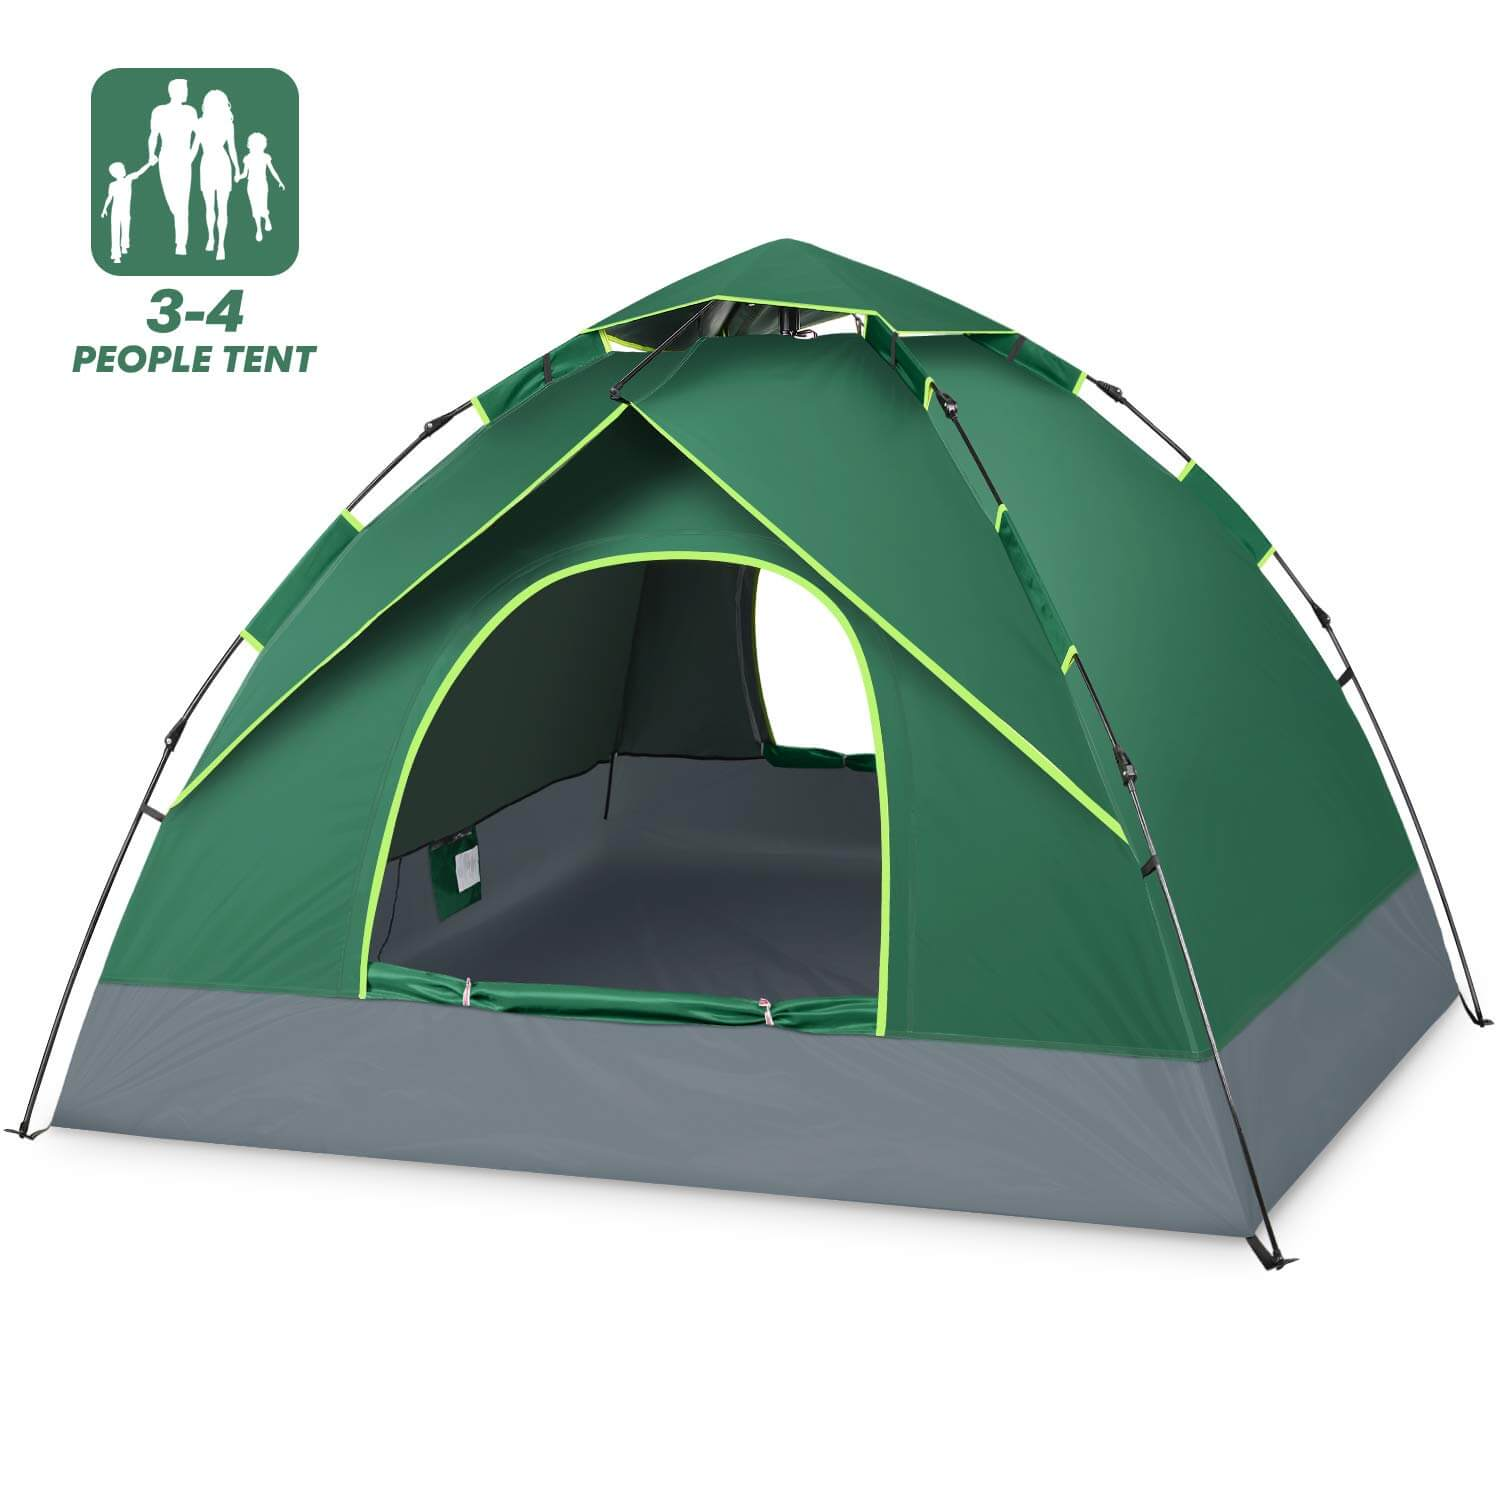 Top 10 Best Waterproof Camping Tents Review-3